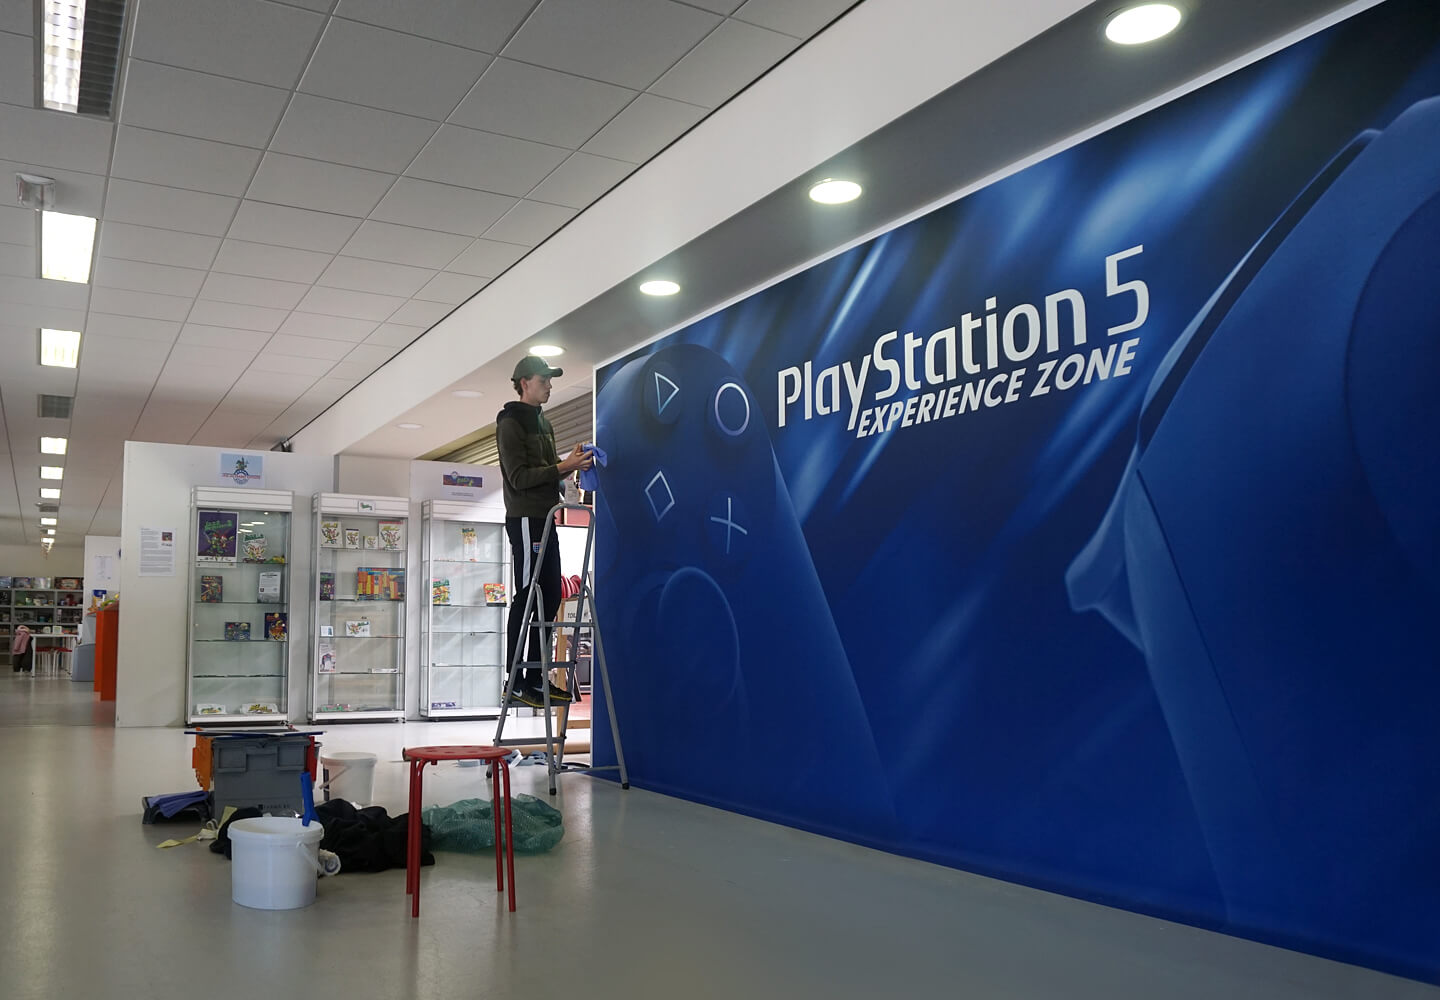 PS5 game museum